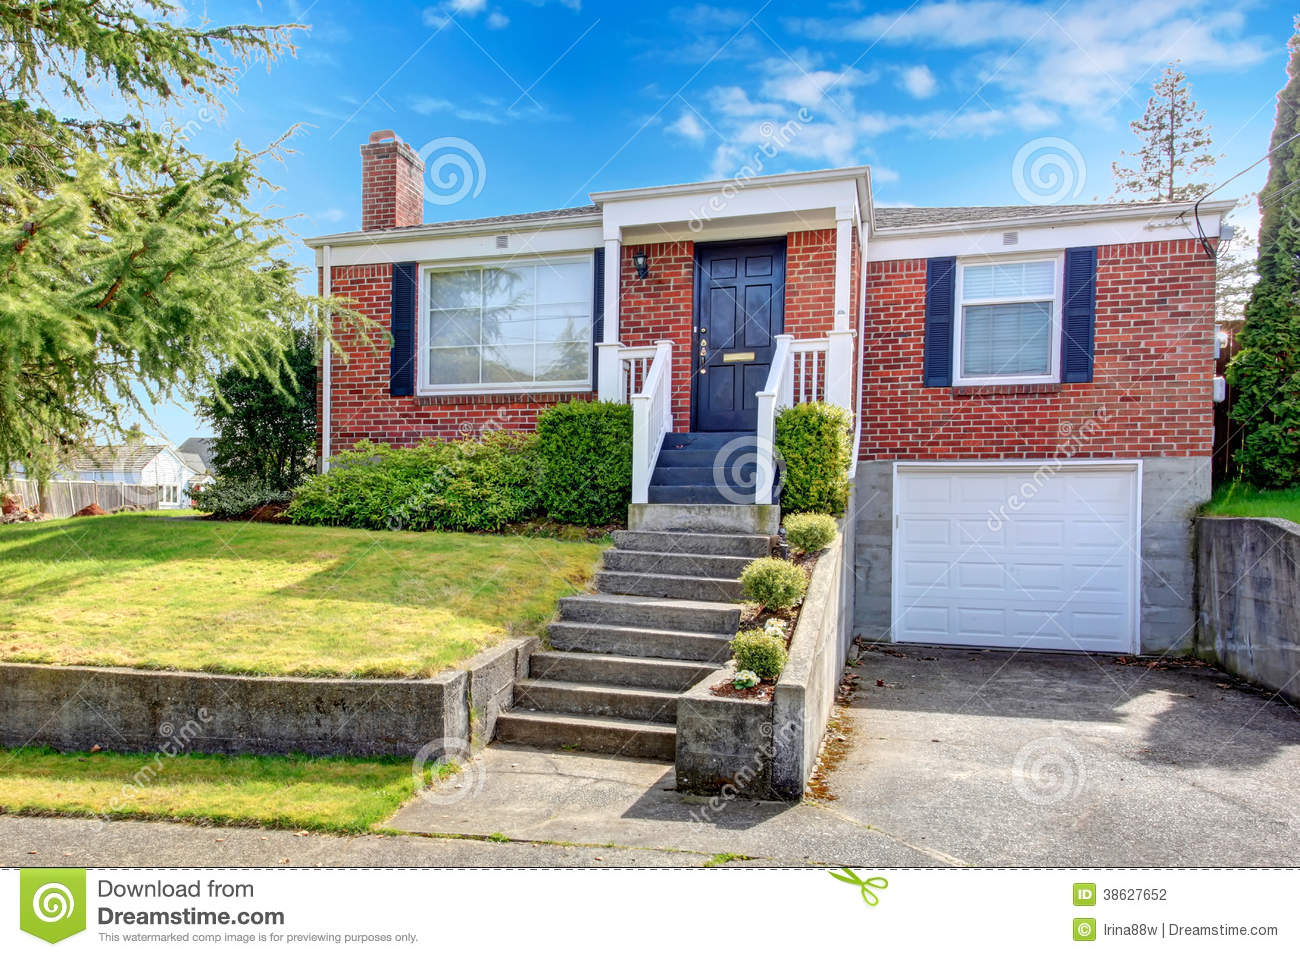 Trim colors for red brick houses - Royalty Free Stock Photo Download Red Brick House With White Trim